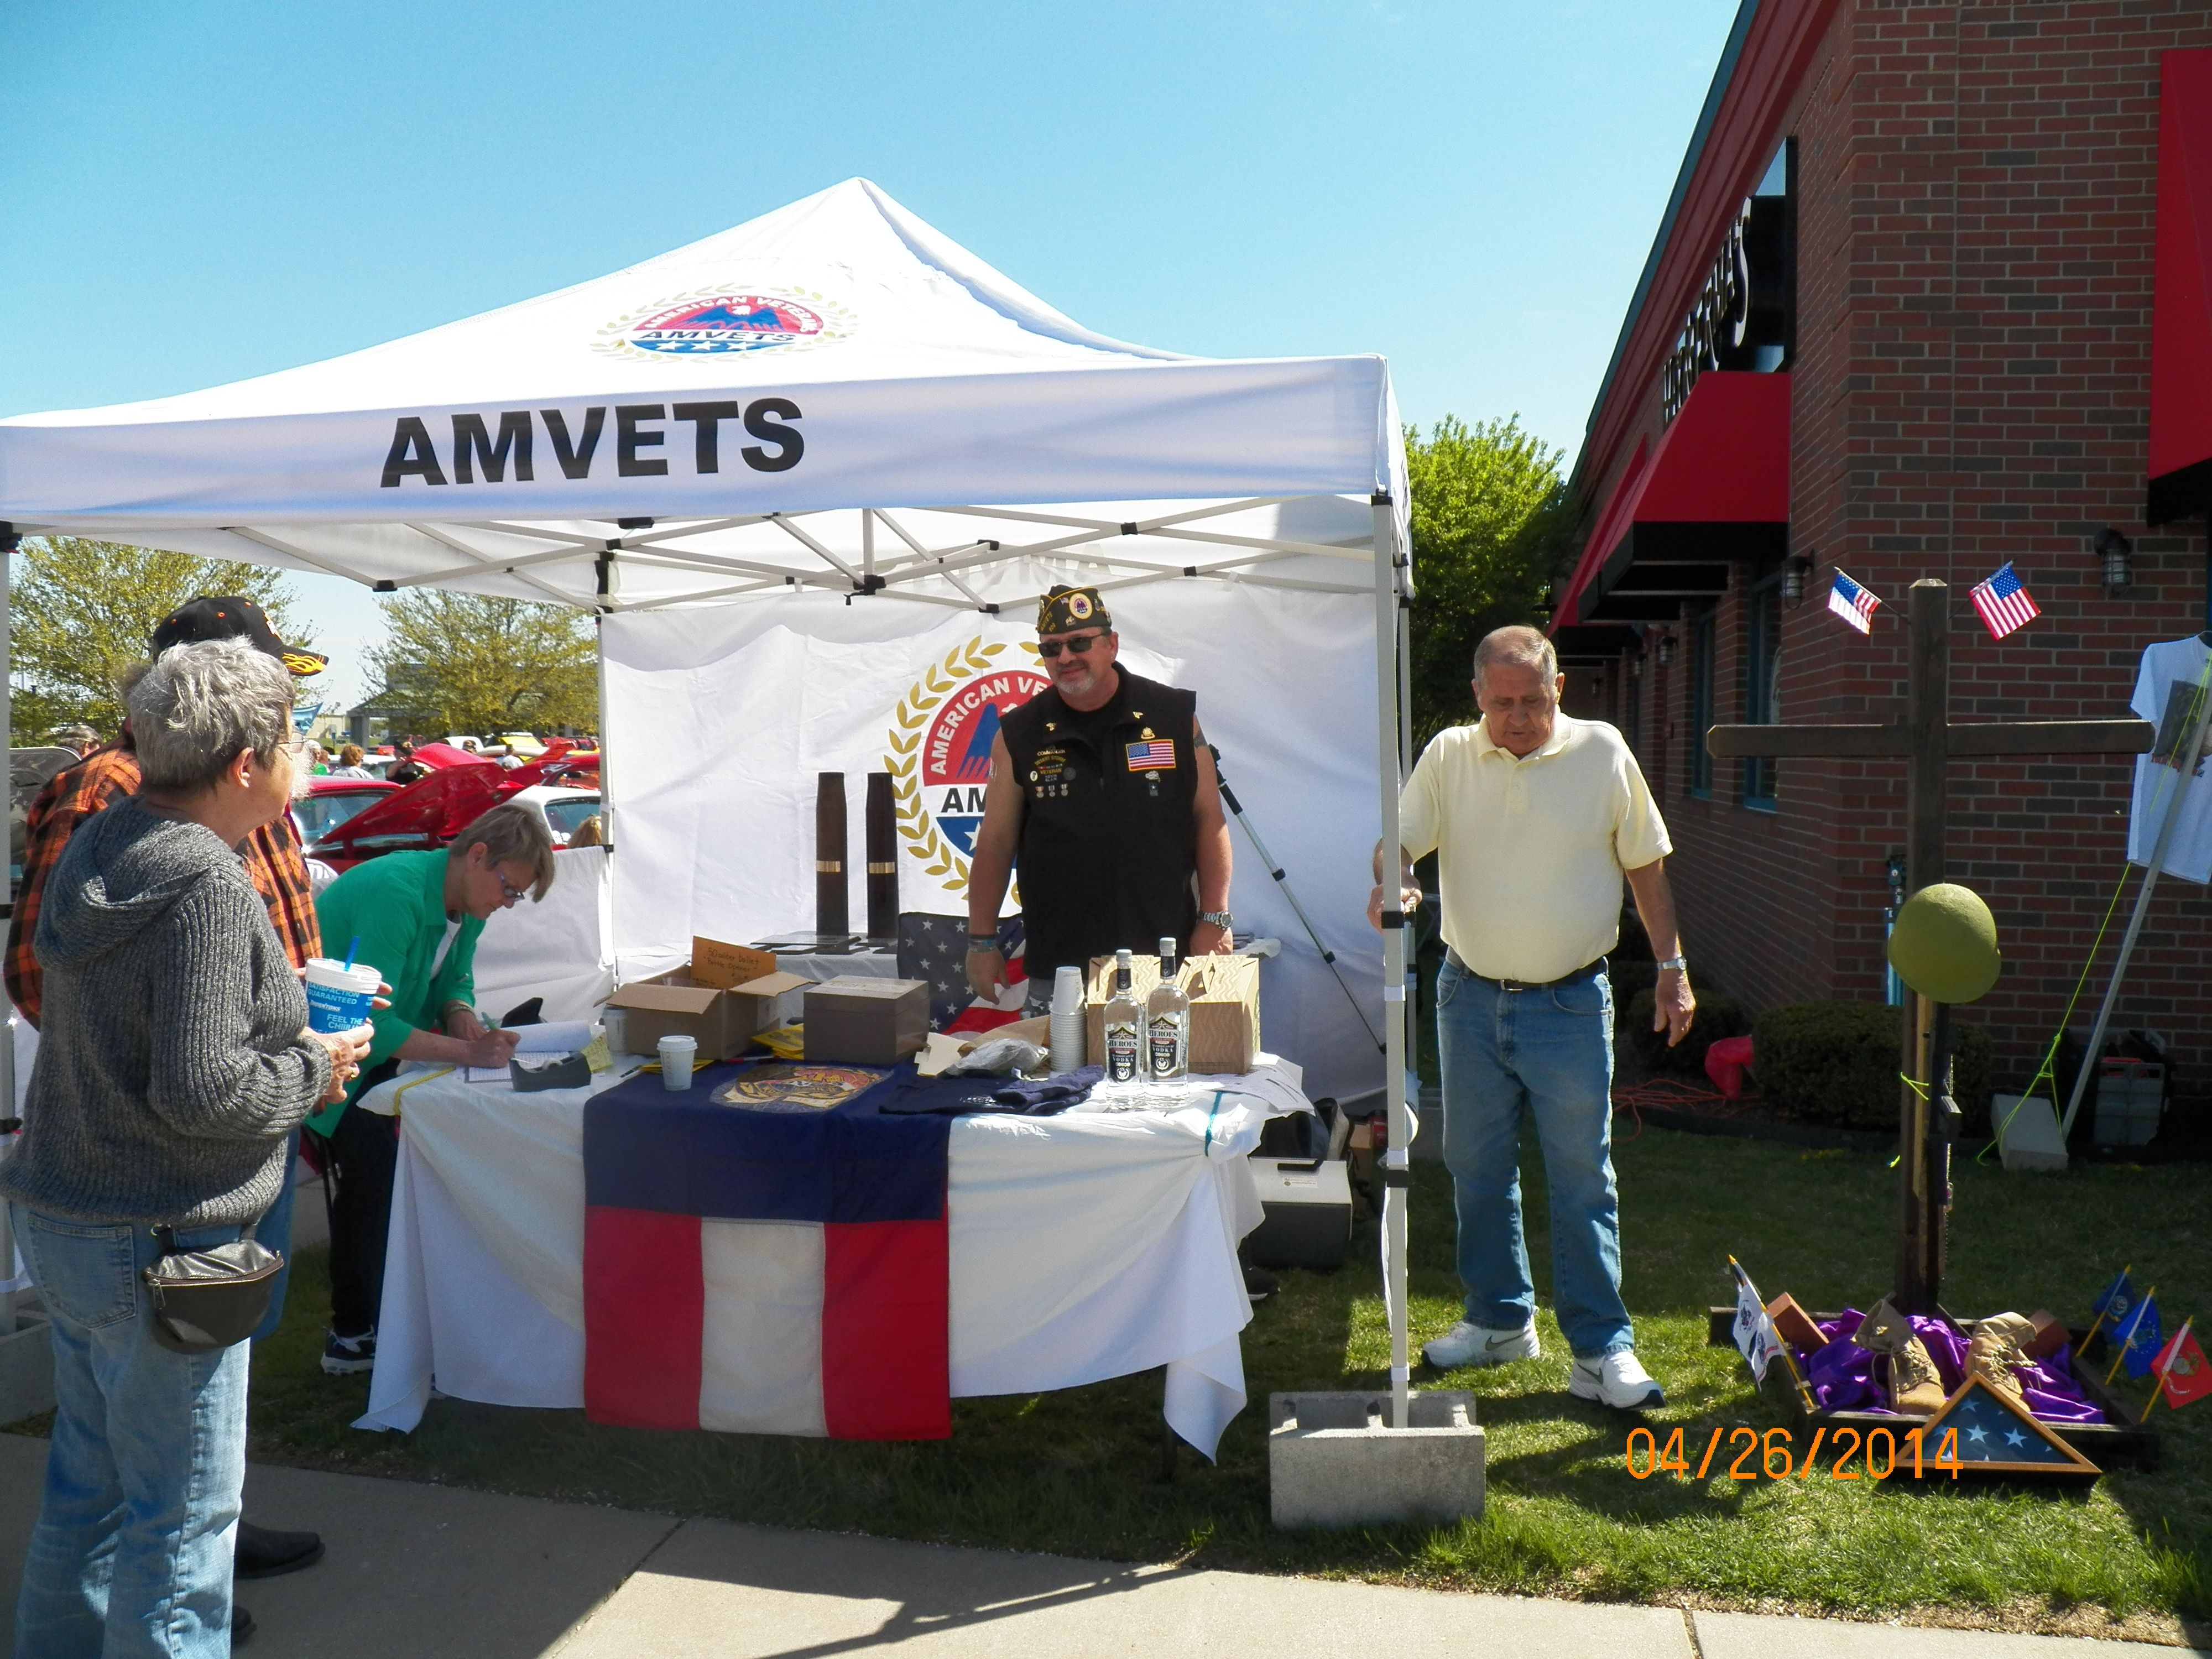 Moving and need to donate stuff? Call AmVets they can pick